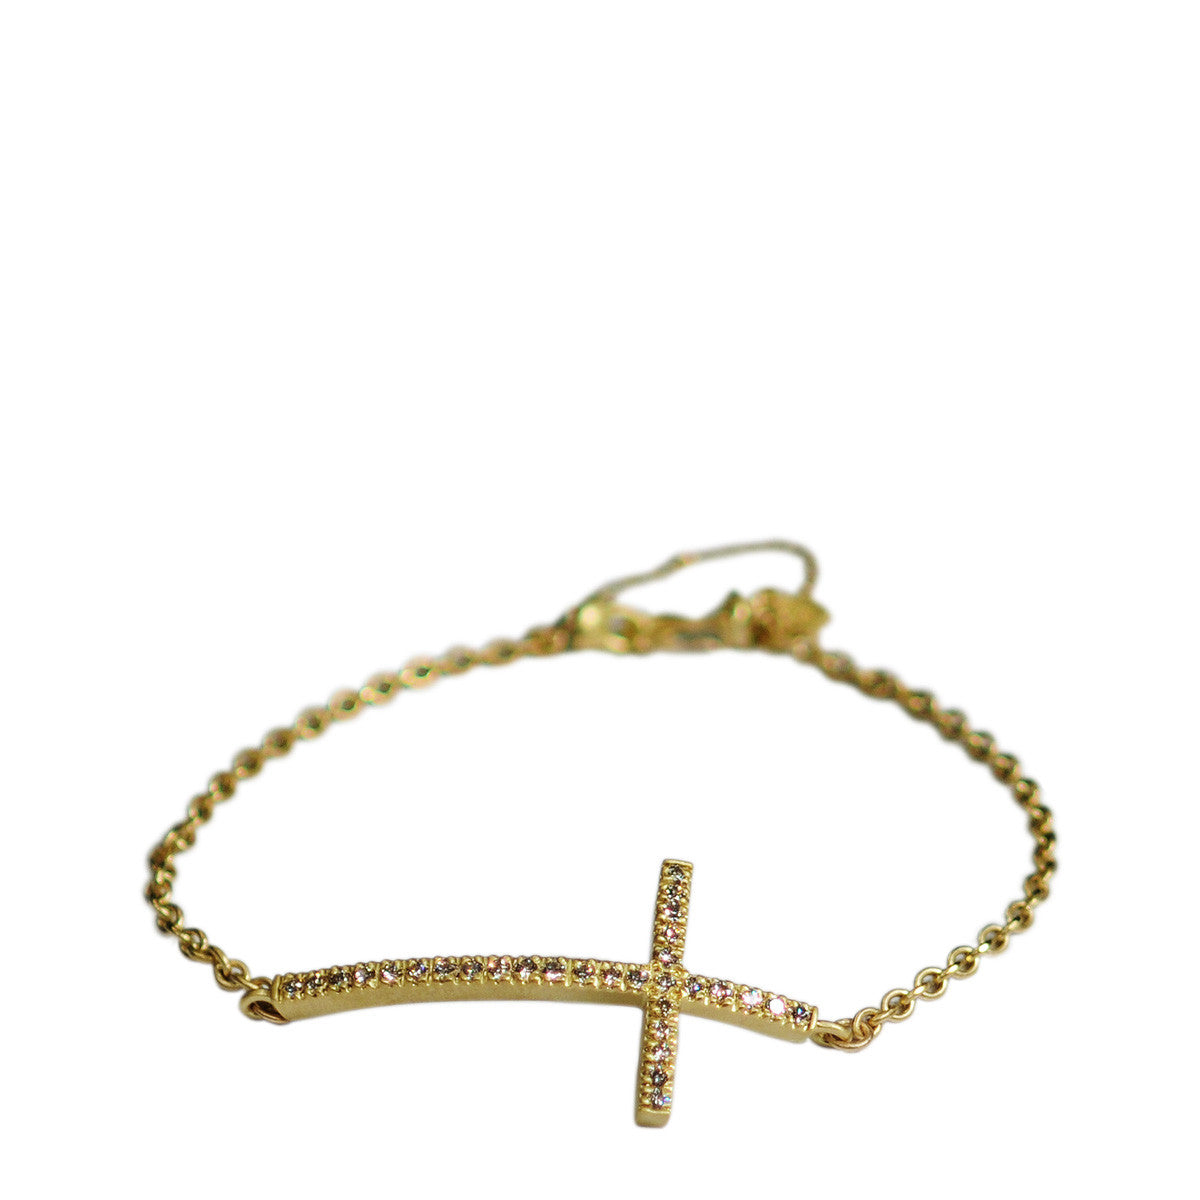 18K Gold Pave Cross Bracelet with Diamonds